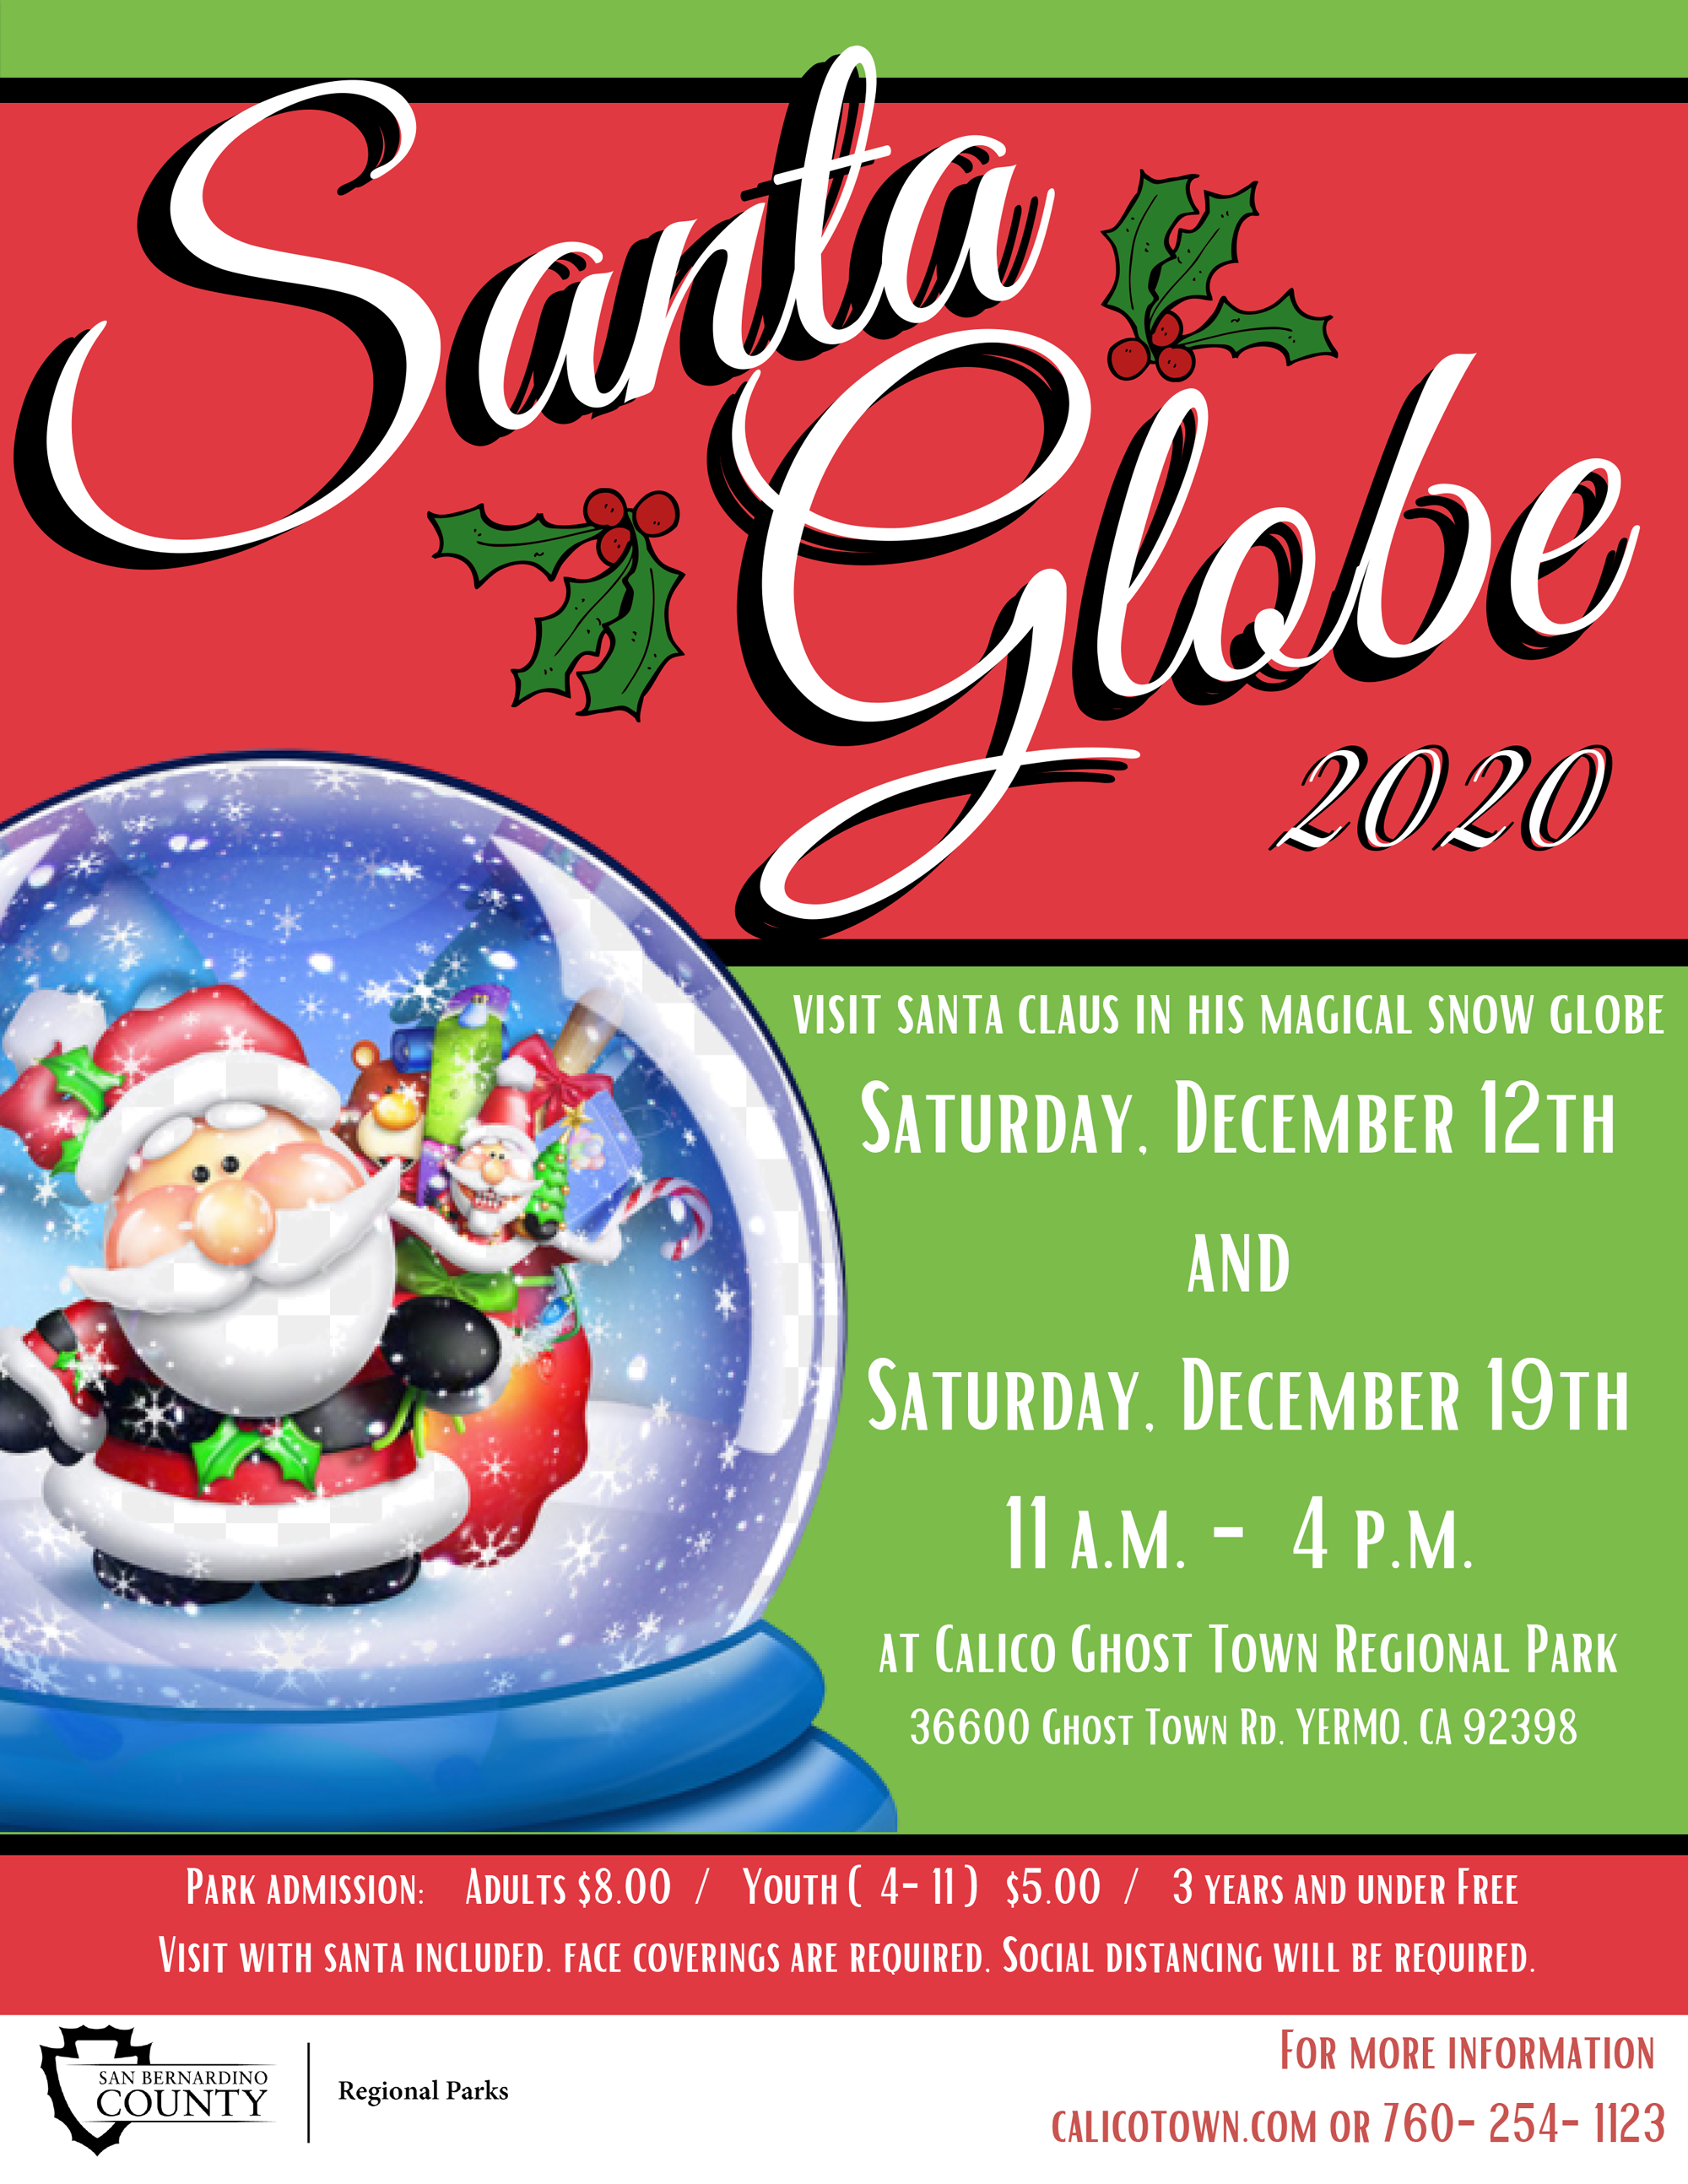 A cartoon illustration of Santa Claus in a snow globe with red and green ckground and text on the right with dates.